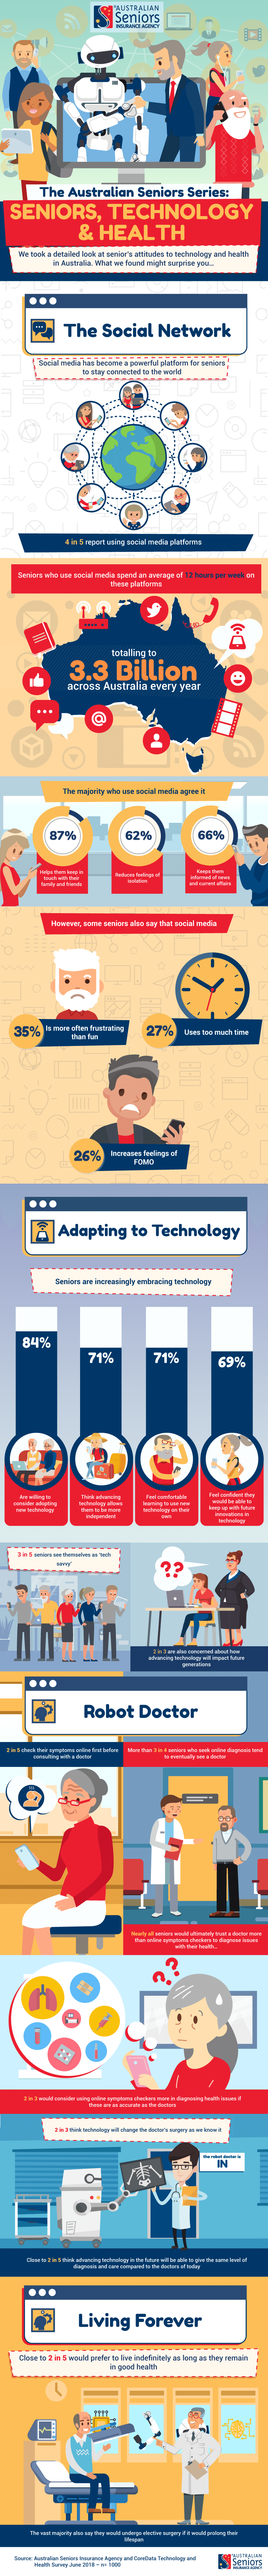 Seniors and Technology - The Australian Seniors Series [infographic]